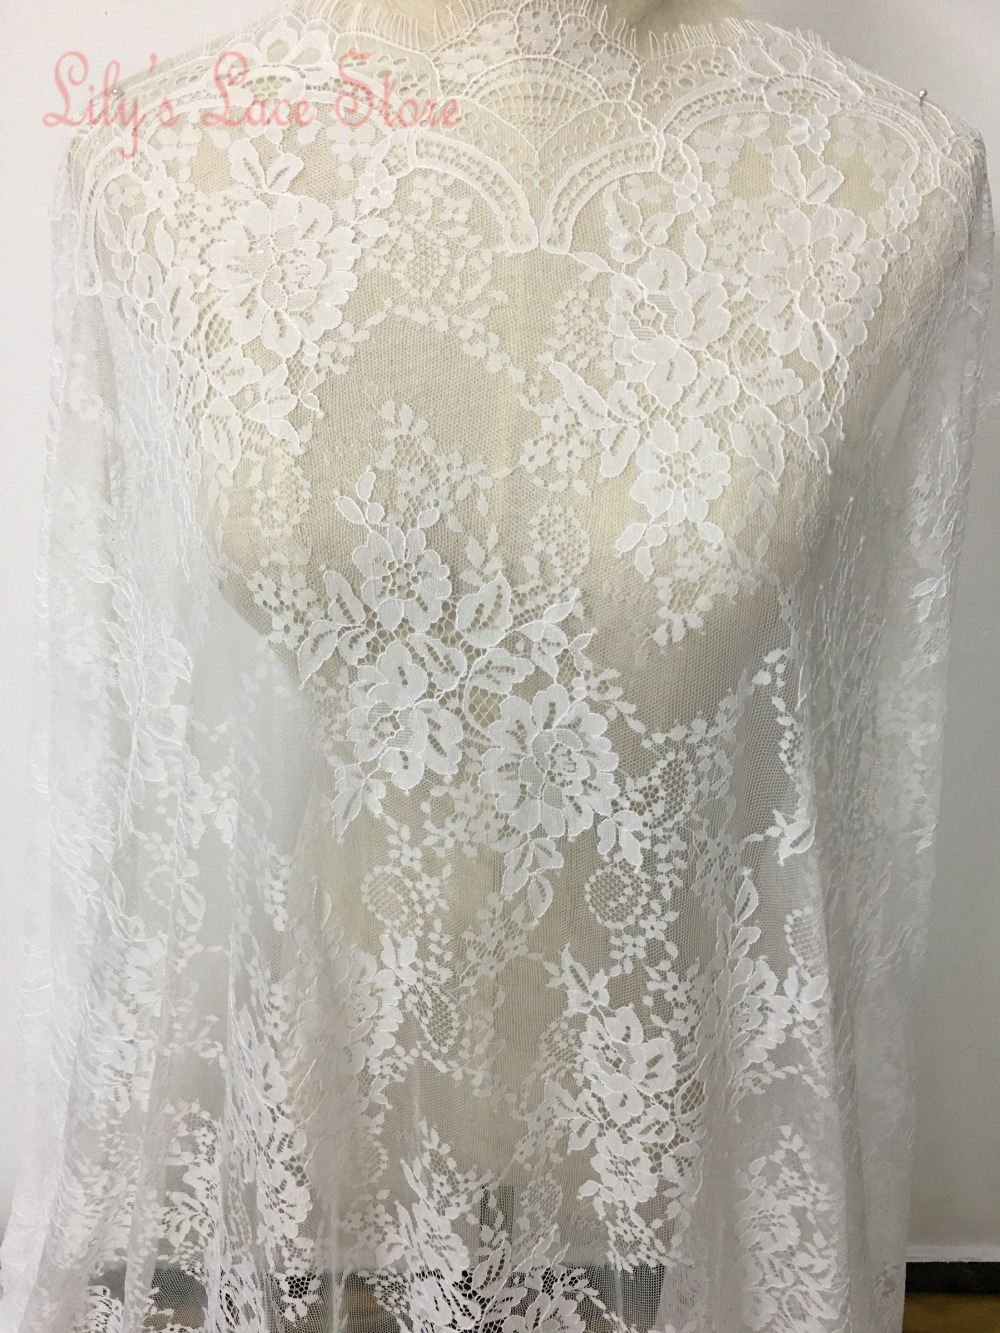 2015 super fashion bridal lace fabric for wedding dresses high 2015 super fashion bridal lace fabric for wedding dresses high grade 100 nylon eyelash chantilly lace fabric wholesale discount in lace from home garden ombrellifo Choice Image